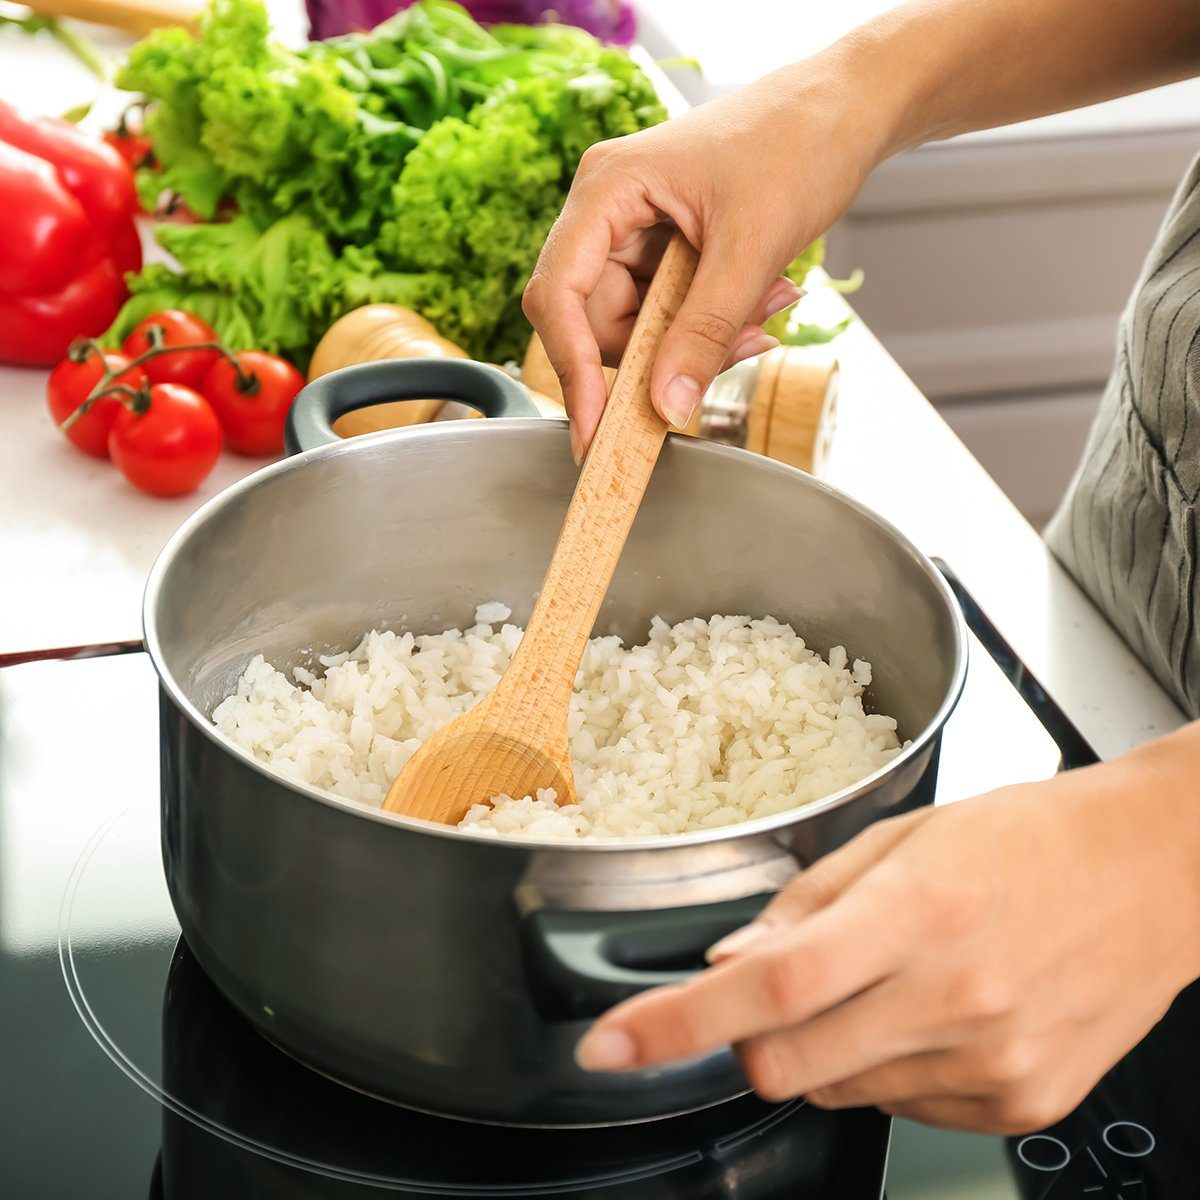 Woman cooking rice in saucepan on stove